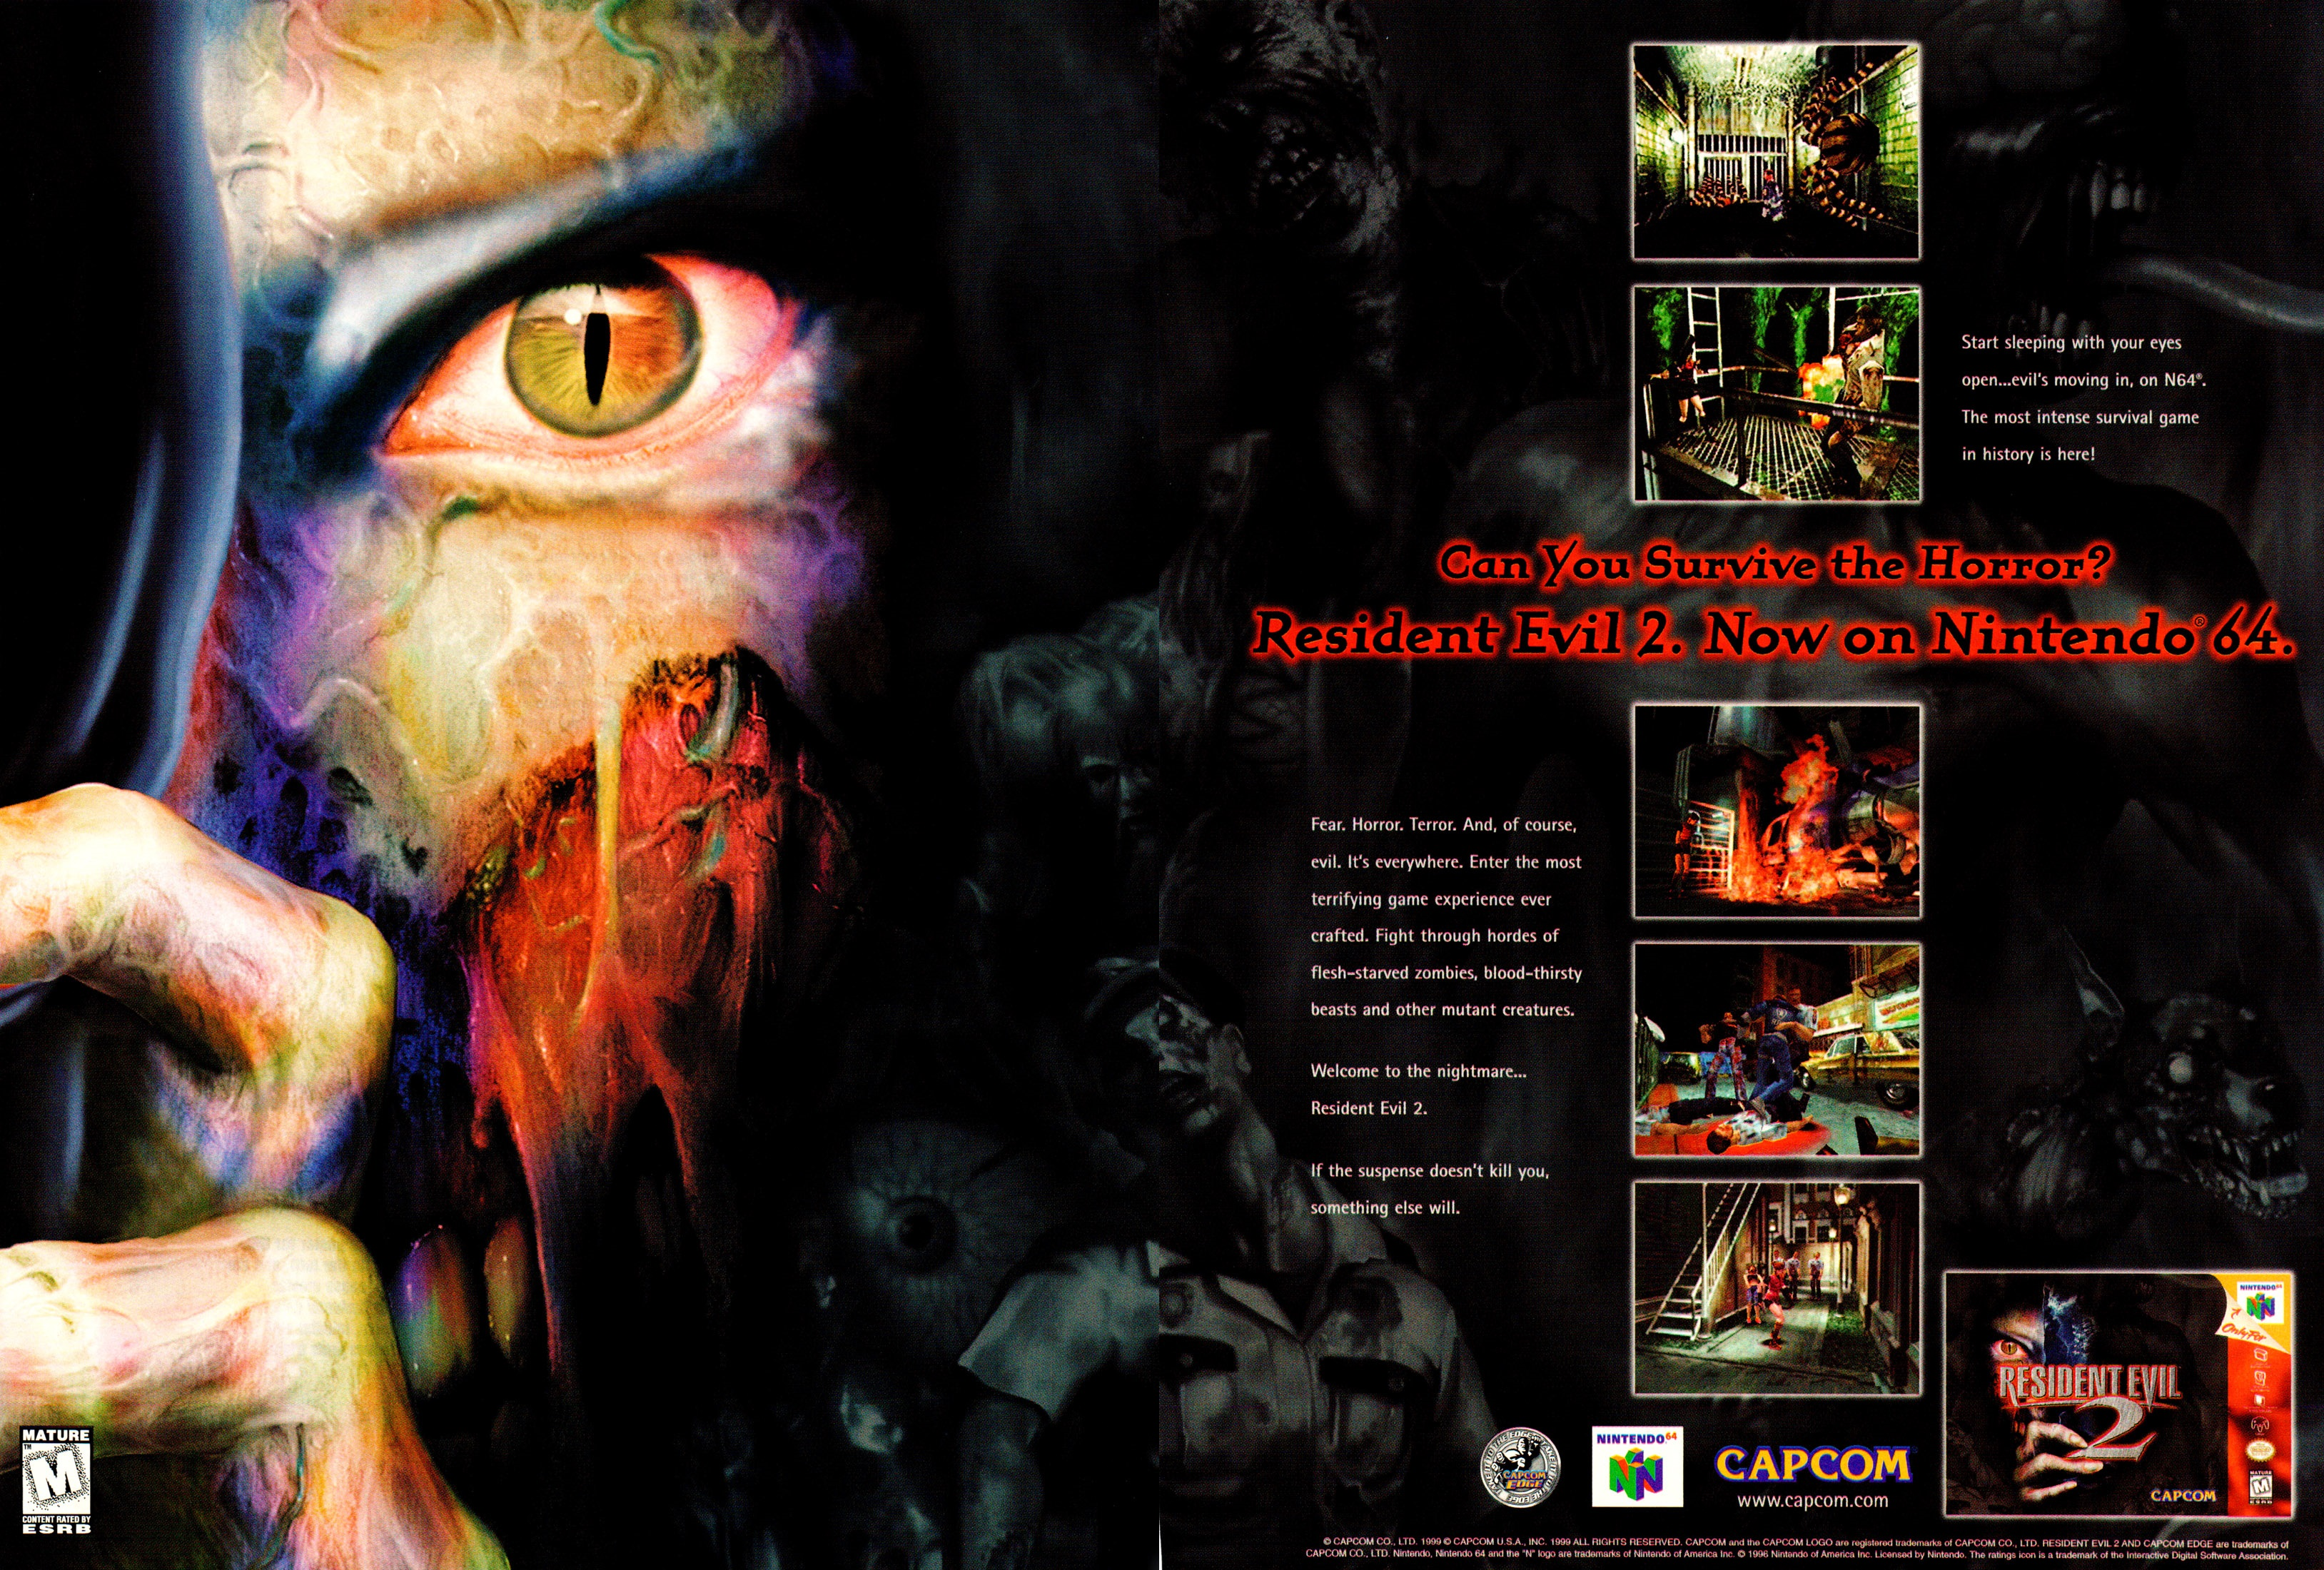 Electronic Gaming Monthly, issue 124 Resident Evil 2 ad